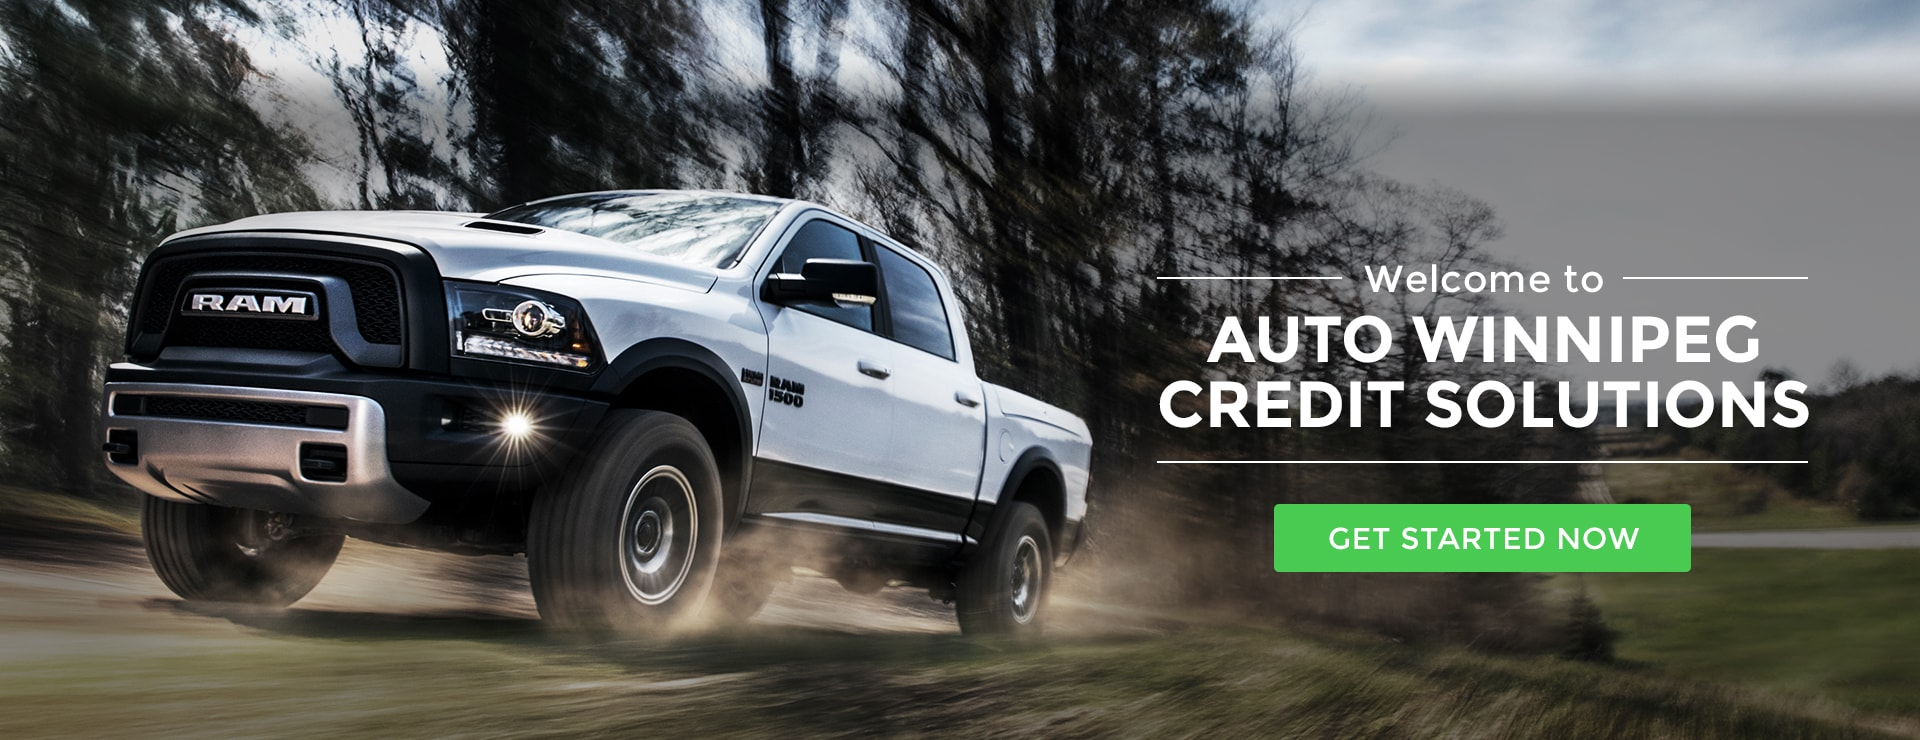 Auto Winnipeg Credit Solutions